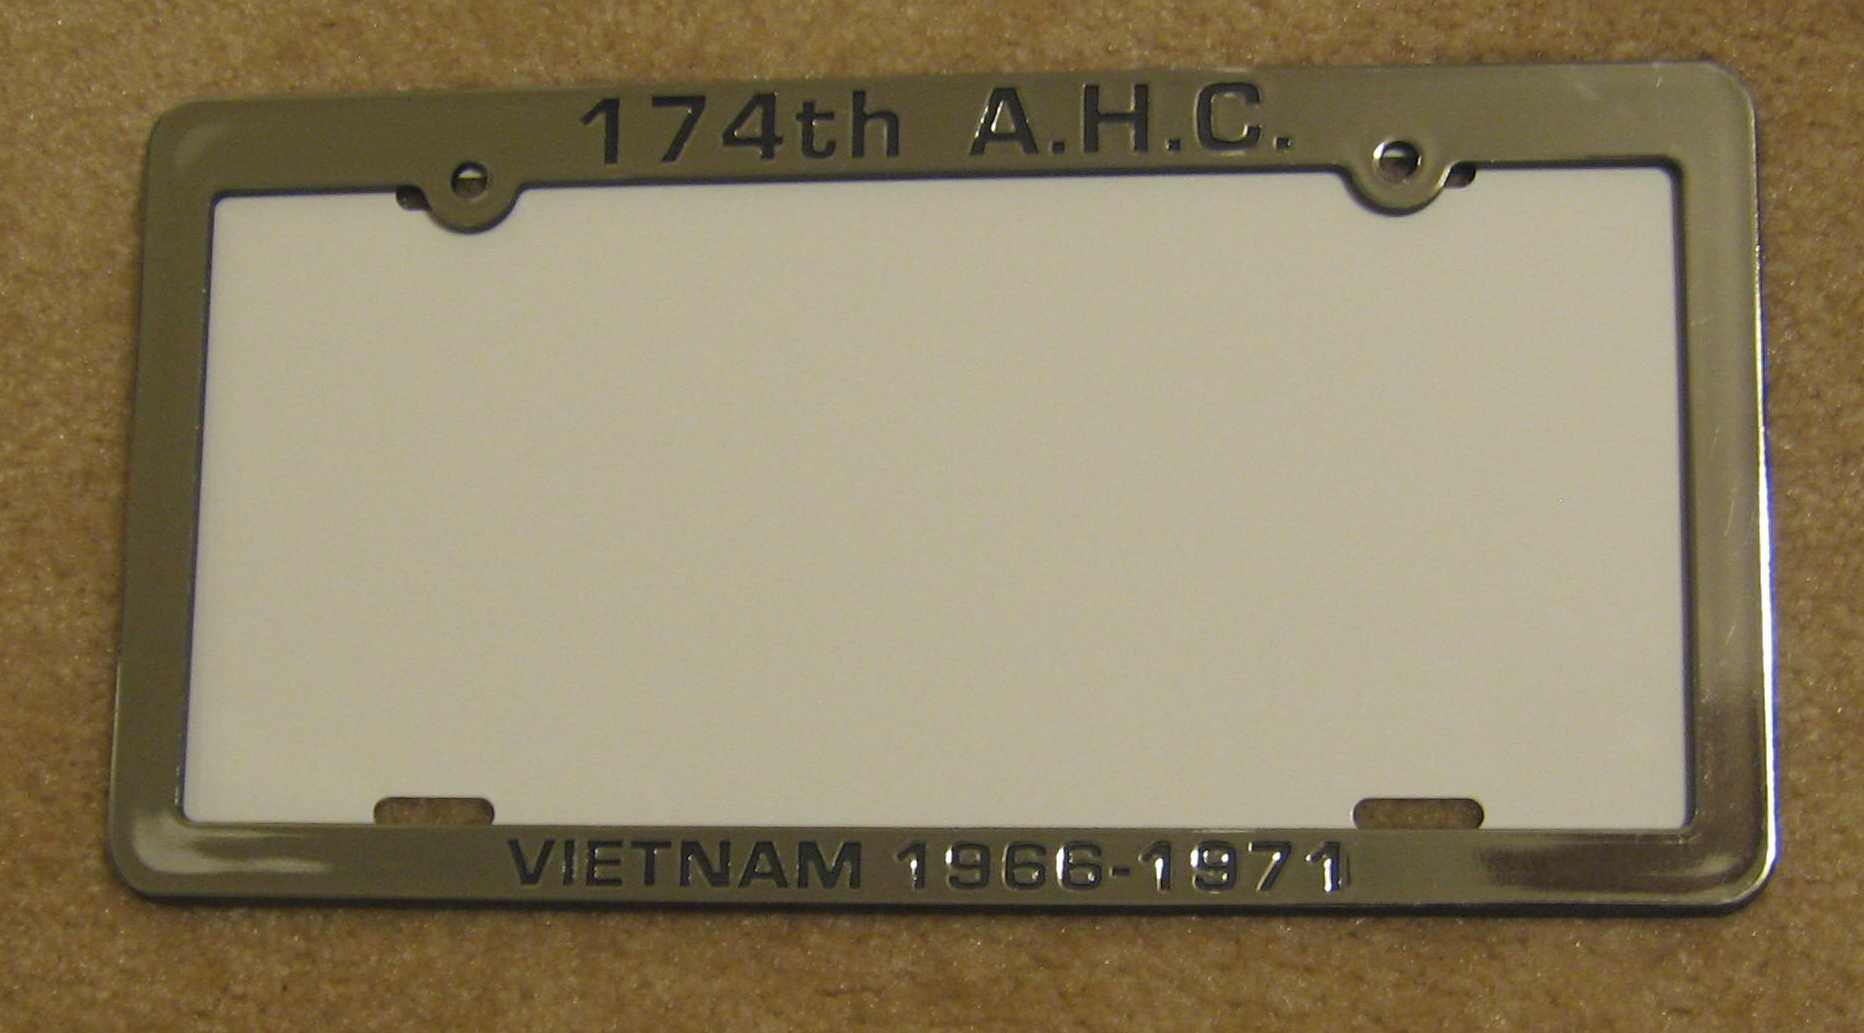 174th ahc vietnam - 174th Ahc License Tag Frame Holder Chrome Plated Plastic With Black Lettering Unlike Some This Frame Does Not Block State Name Or Special Lettering At